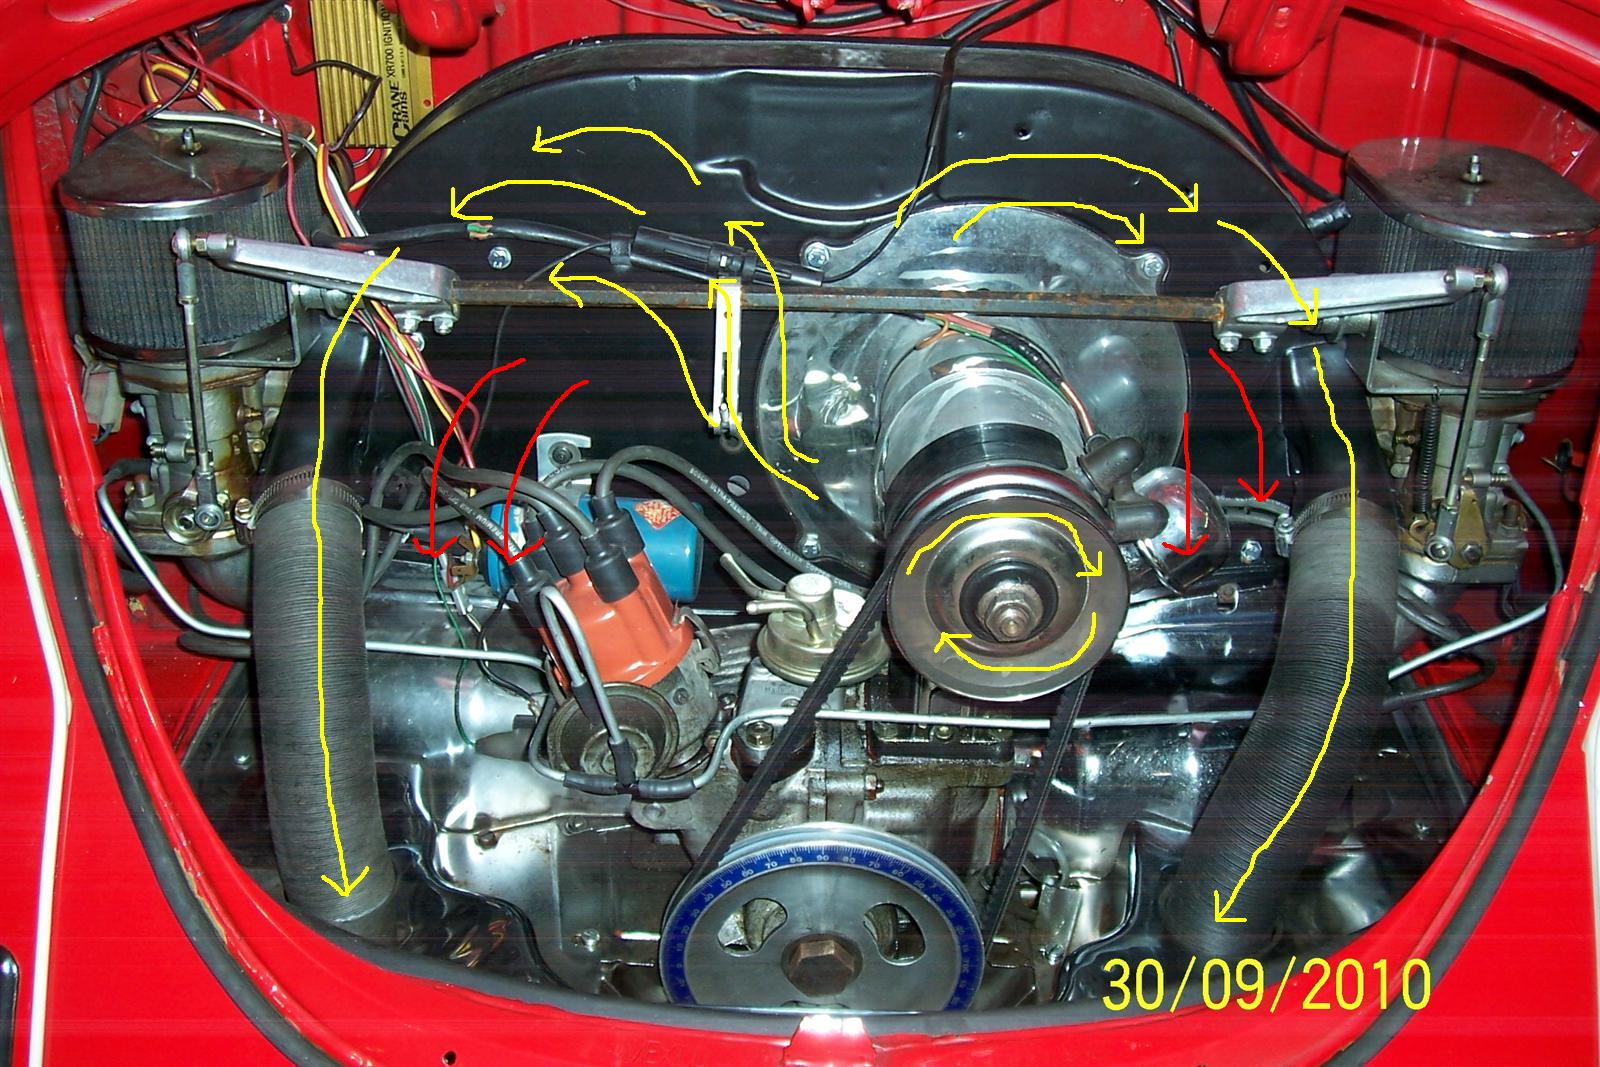 hight resolution of 1915cc vw engine diagram best secret wiring diagram u20221972 volkswagen engine diagram wiring library rh